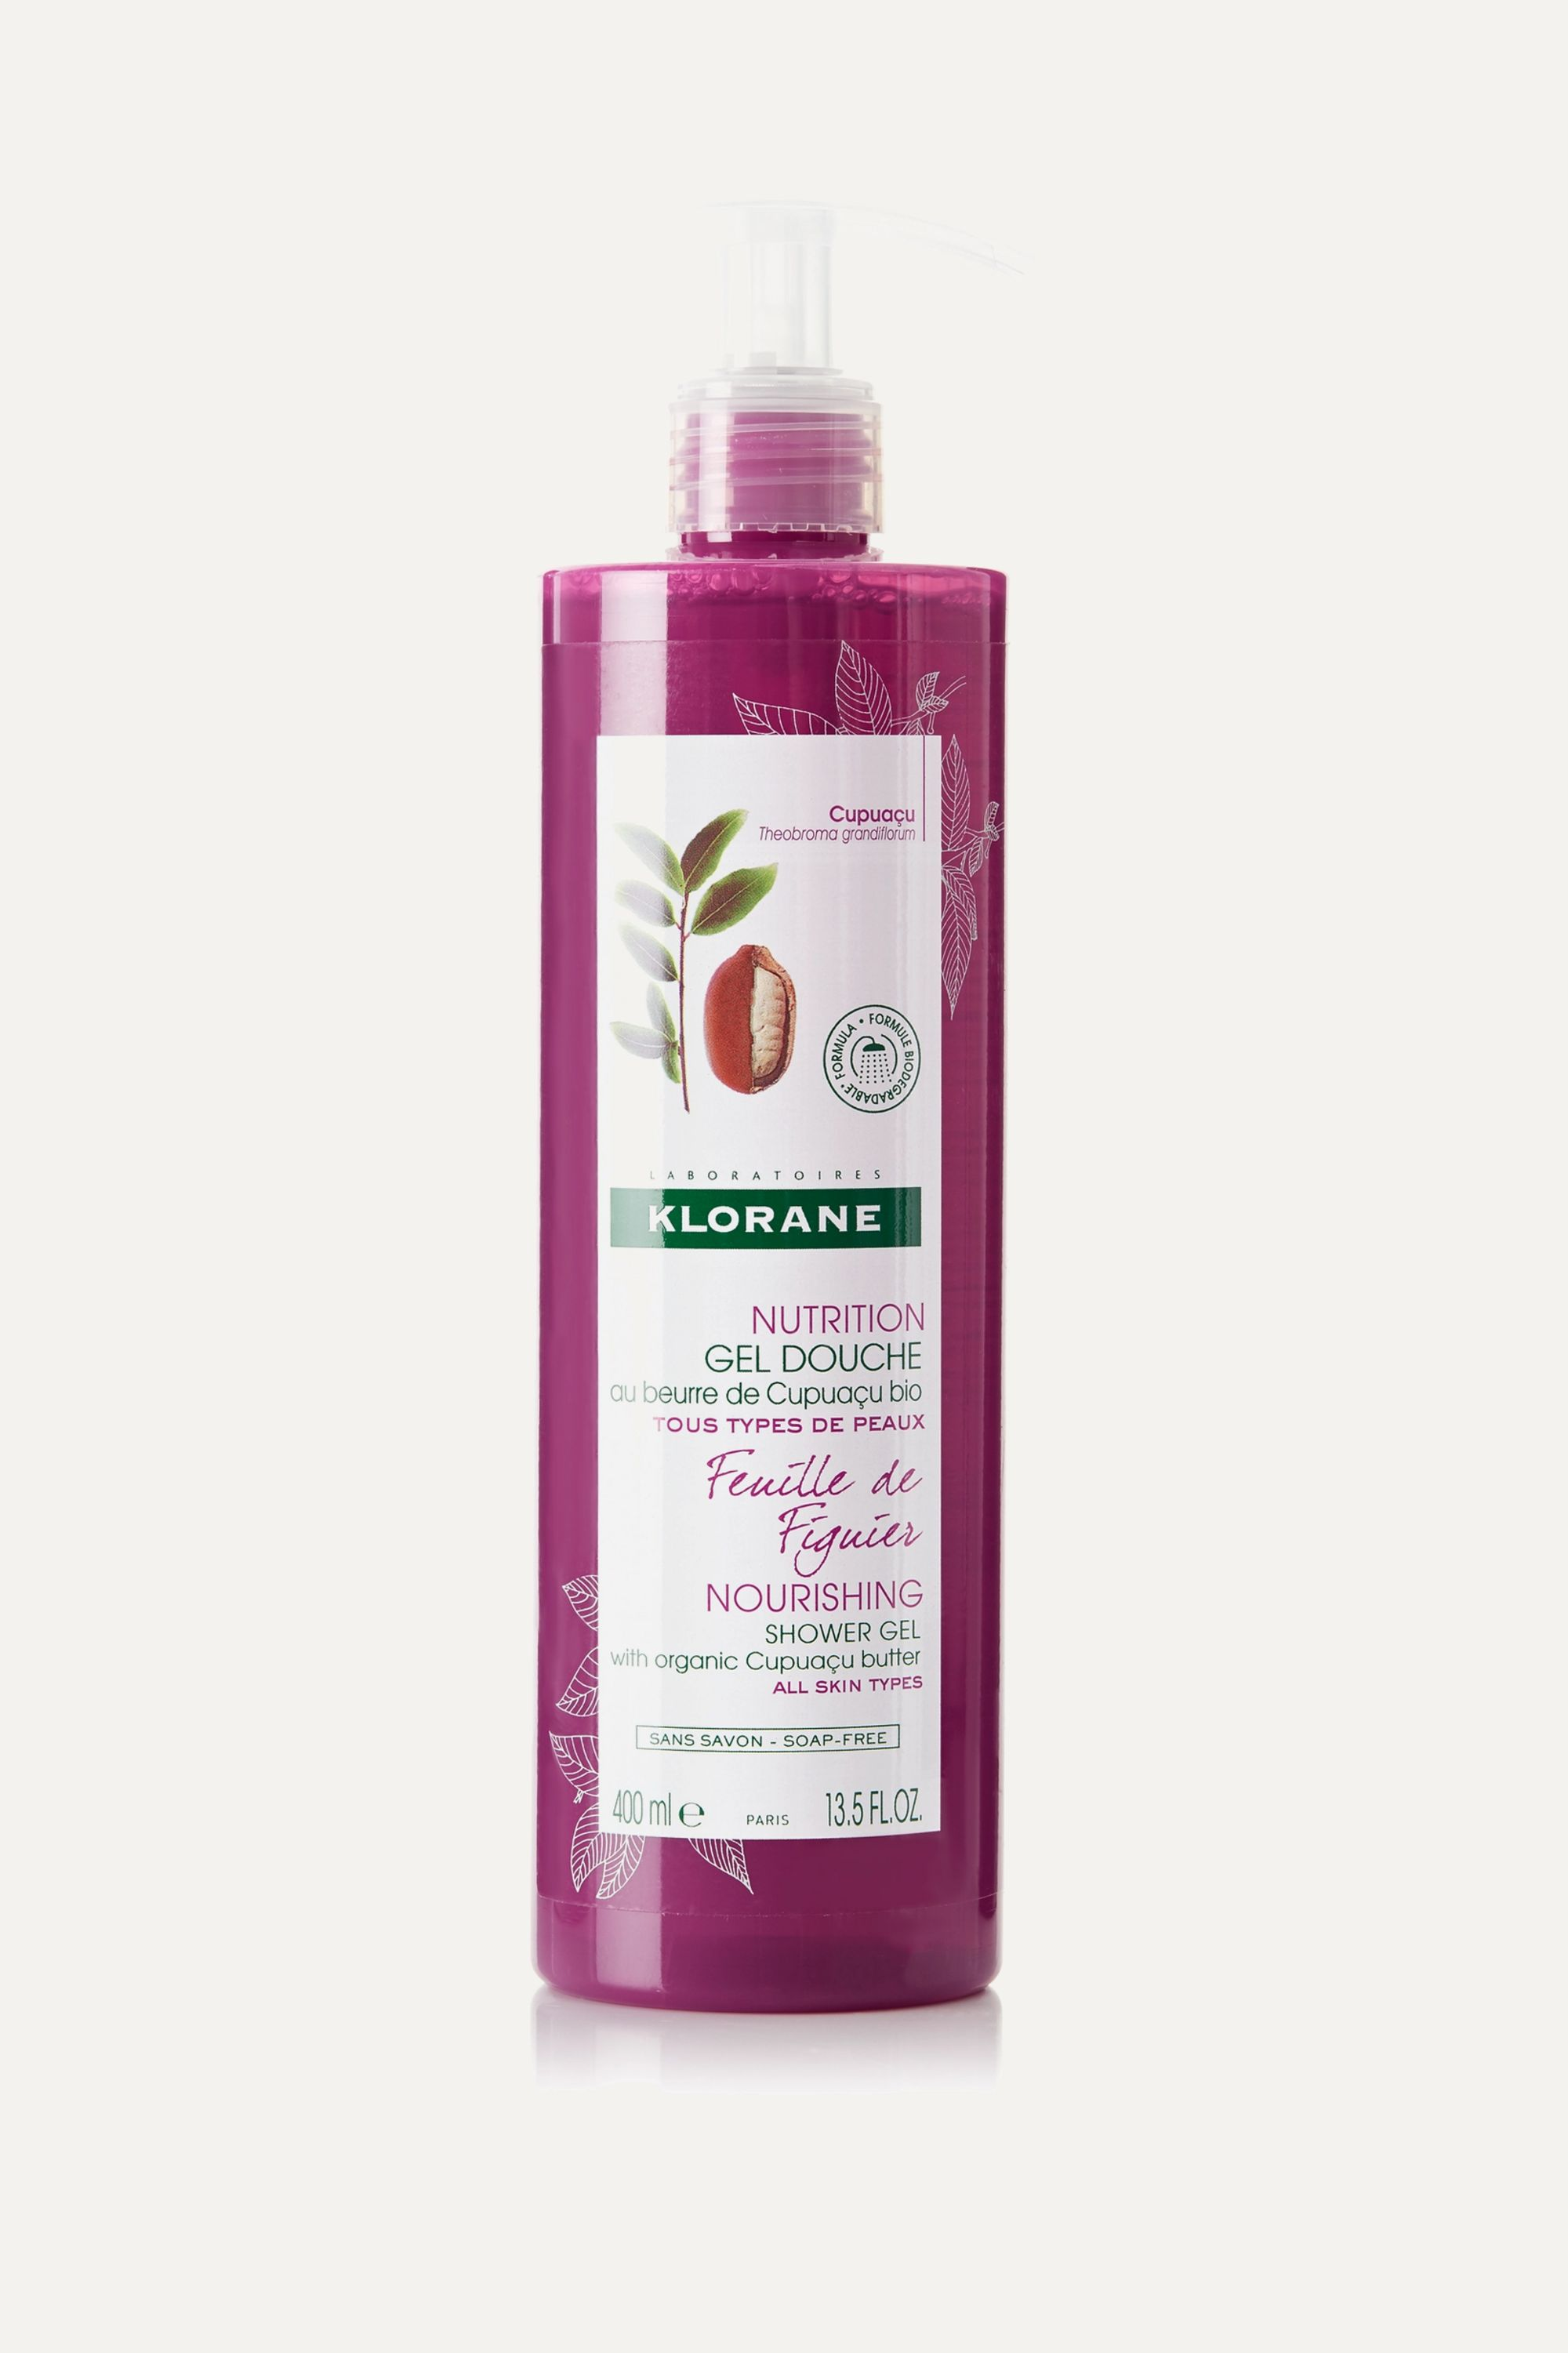 Colorless Fig Leaf Shower Gel With Cupuacu Butter 400ml Klorane Net A Porter